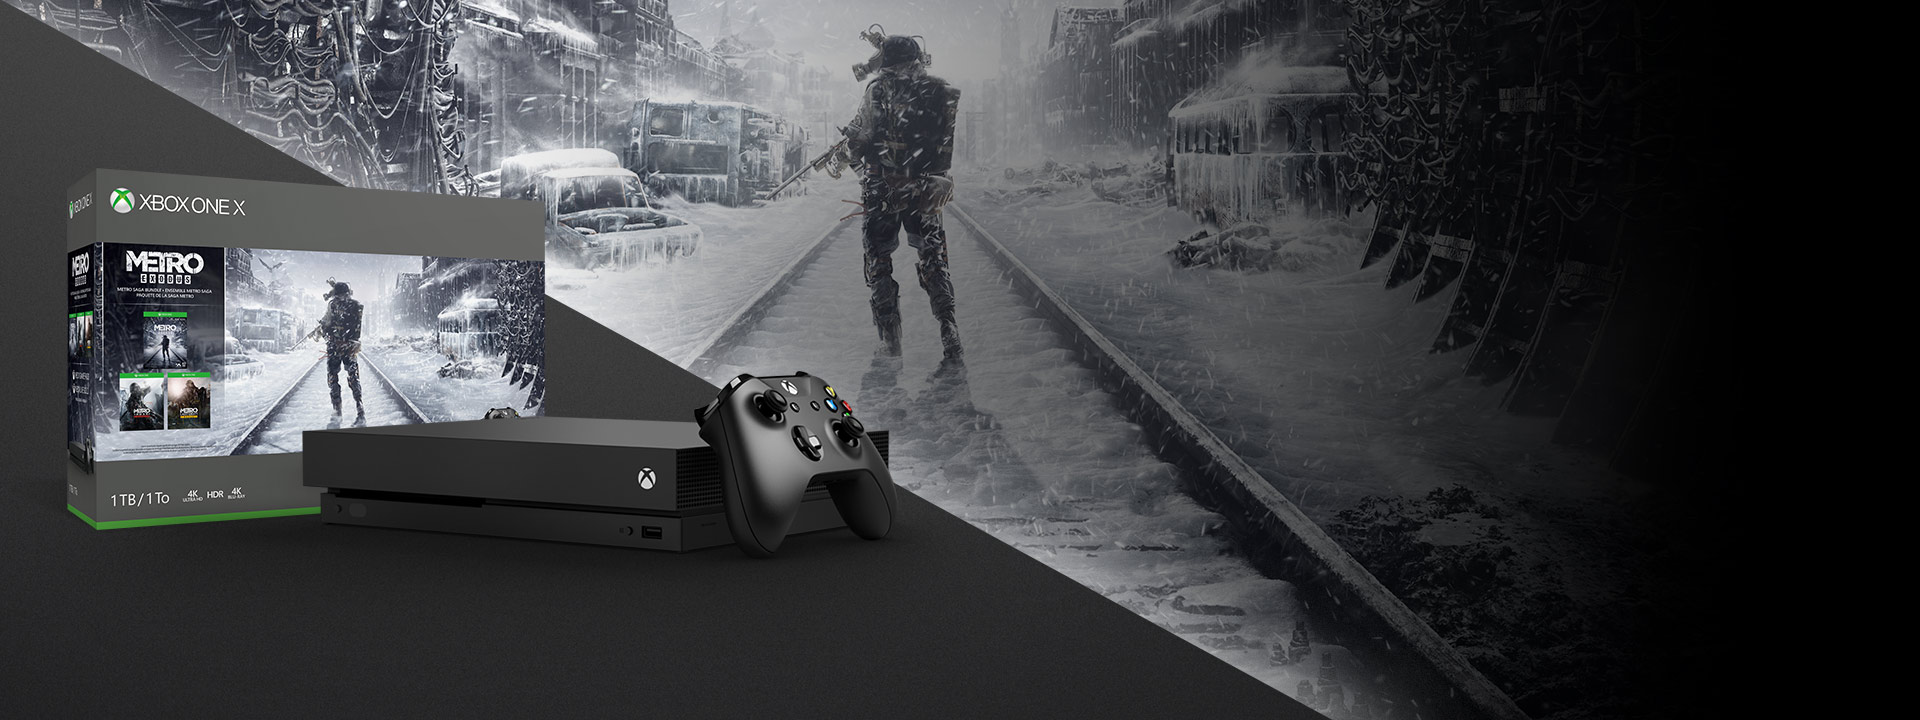 The Xbox One X Metro Saga Bundle pictured in front of a wintry scene